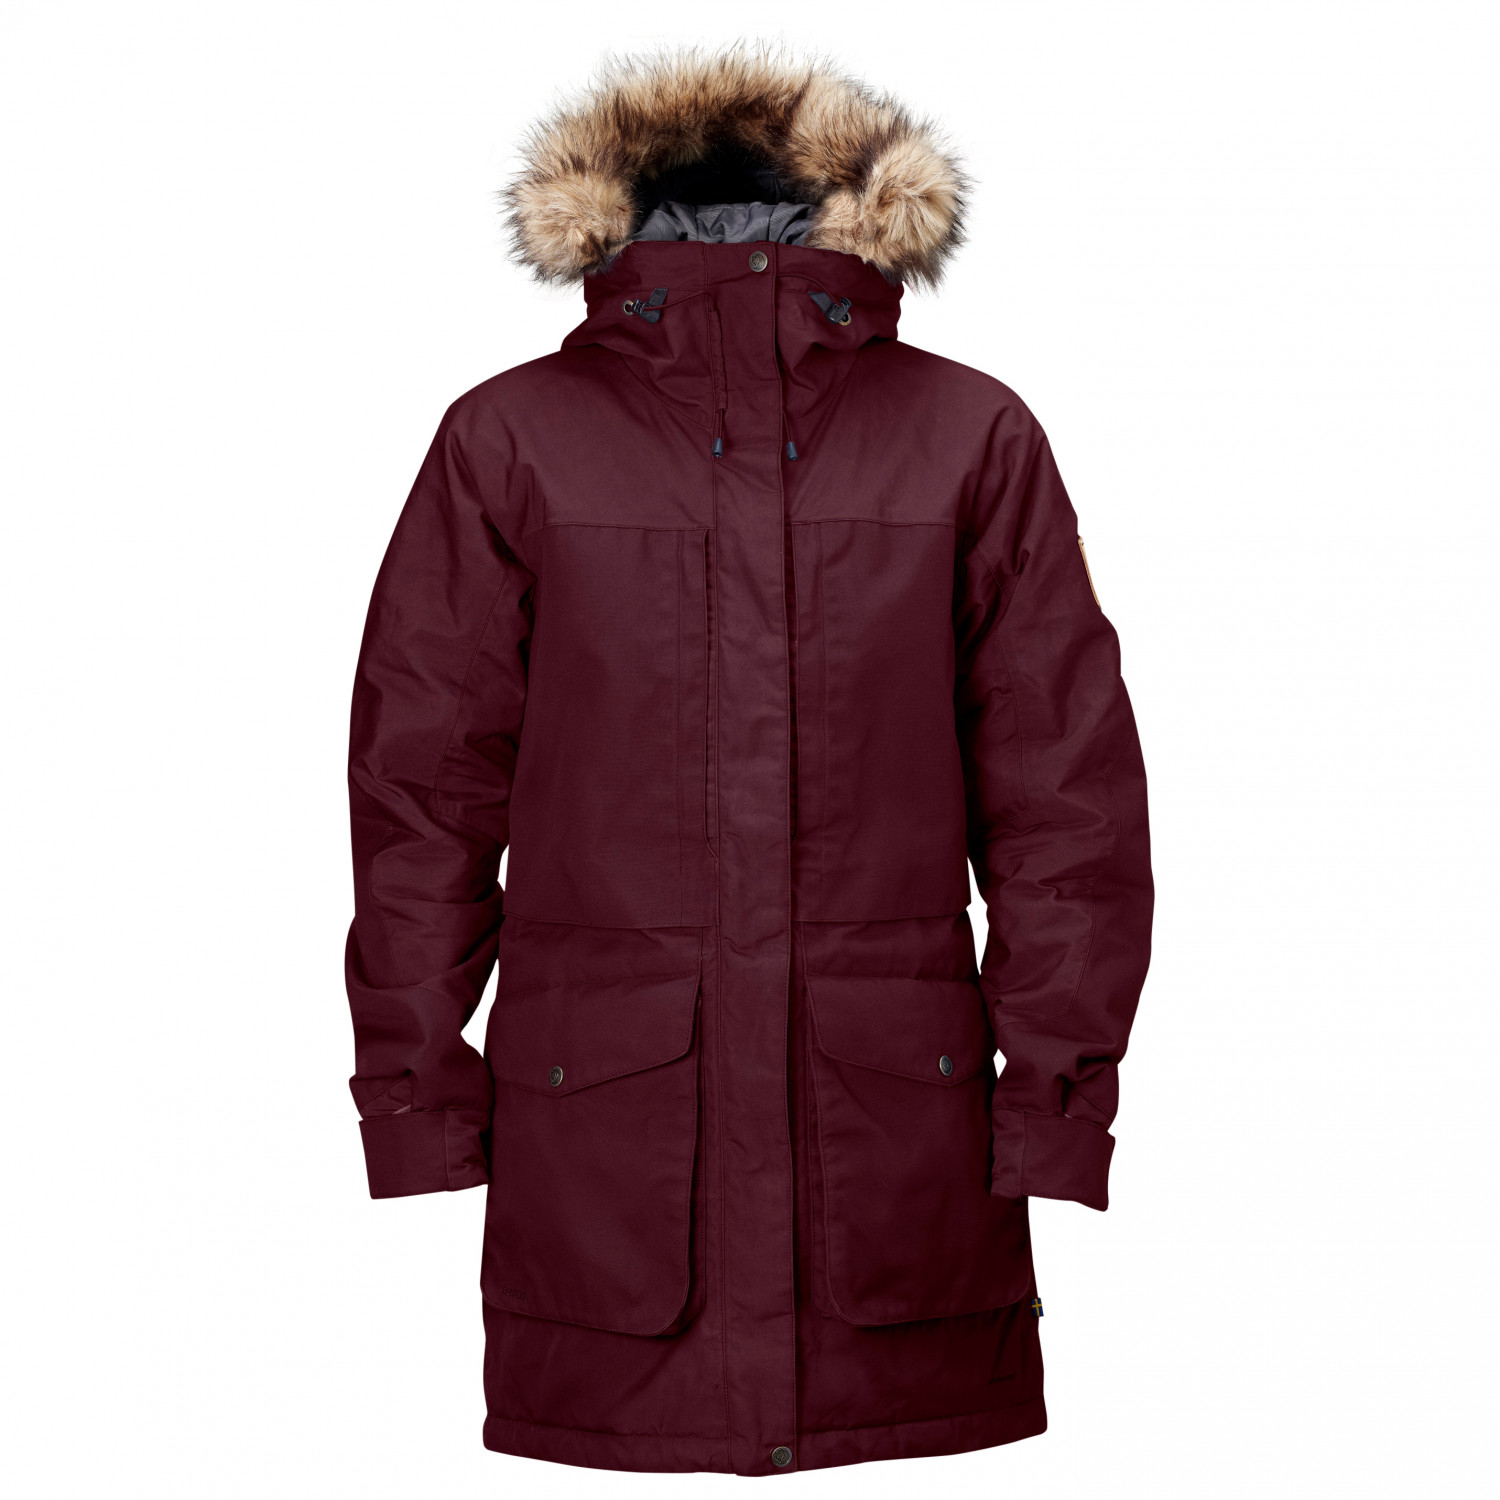 new arrivals 6b0dd 30537 Fjällräven - Women's Barents Parka - Coat - Black | XS